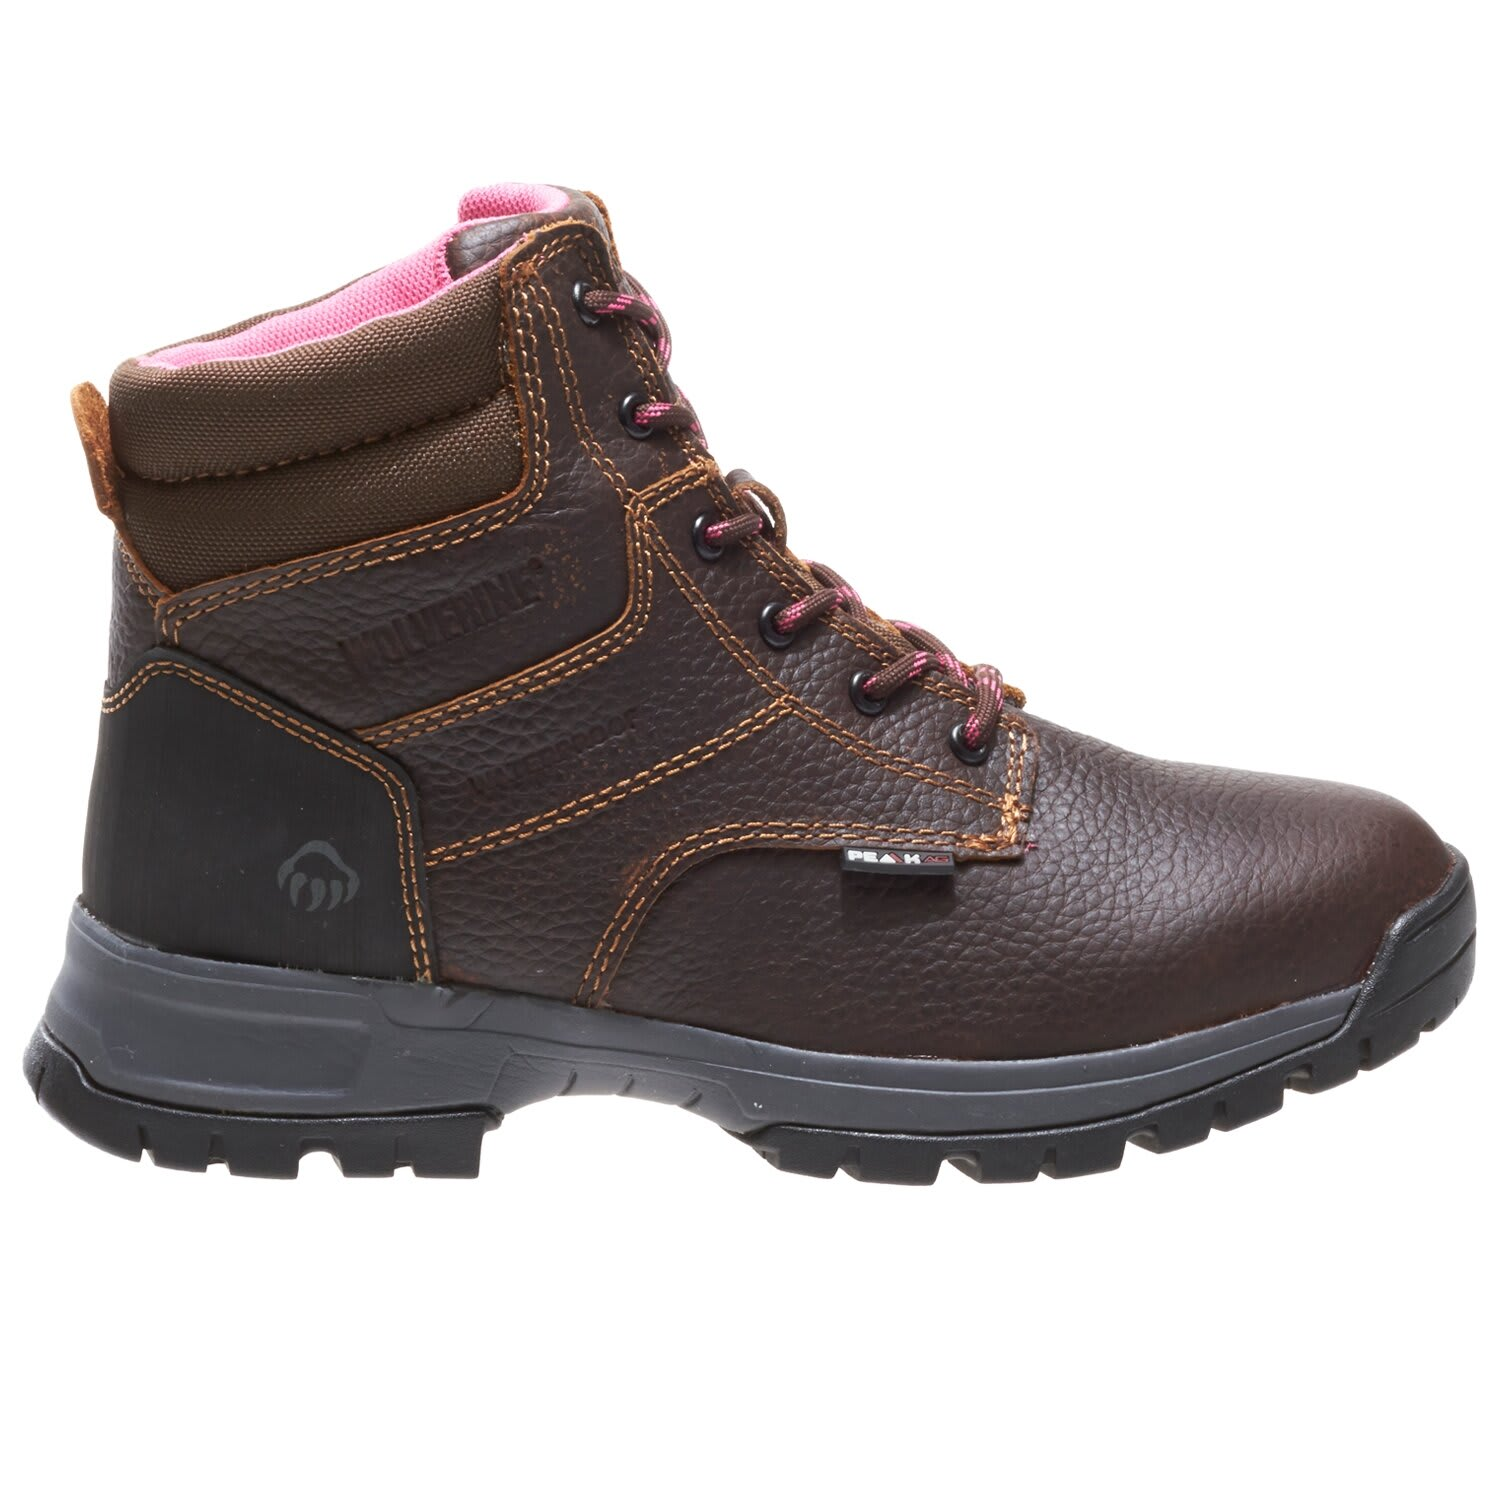 Wolverine Lds Piper Boots